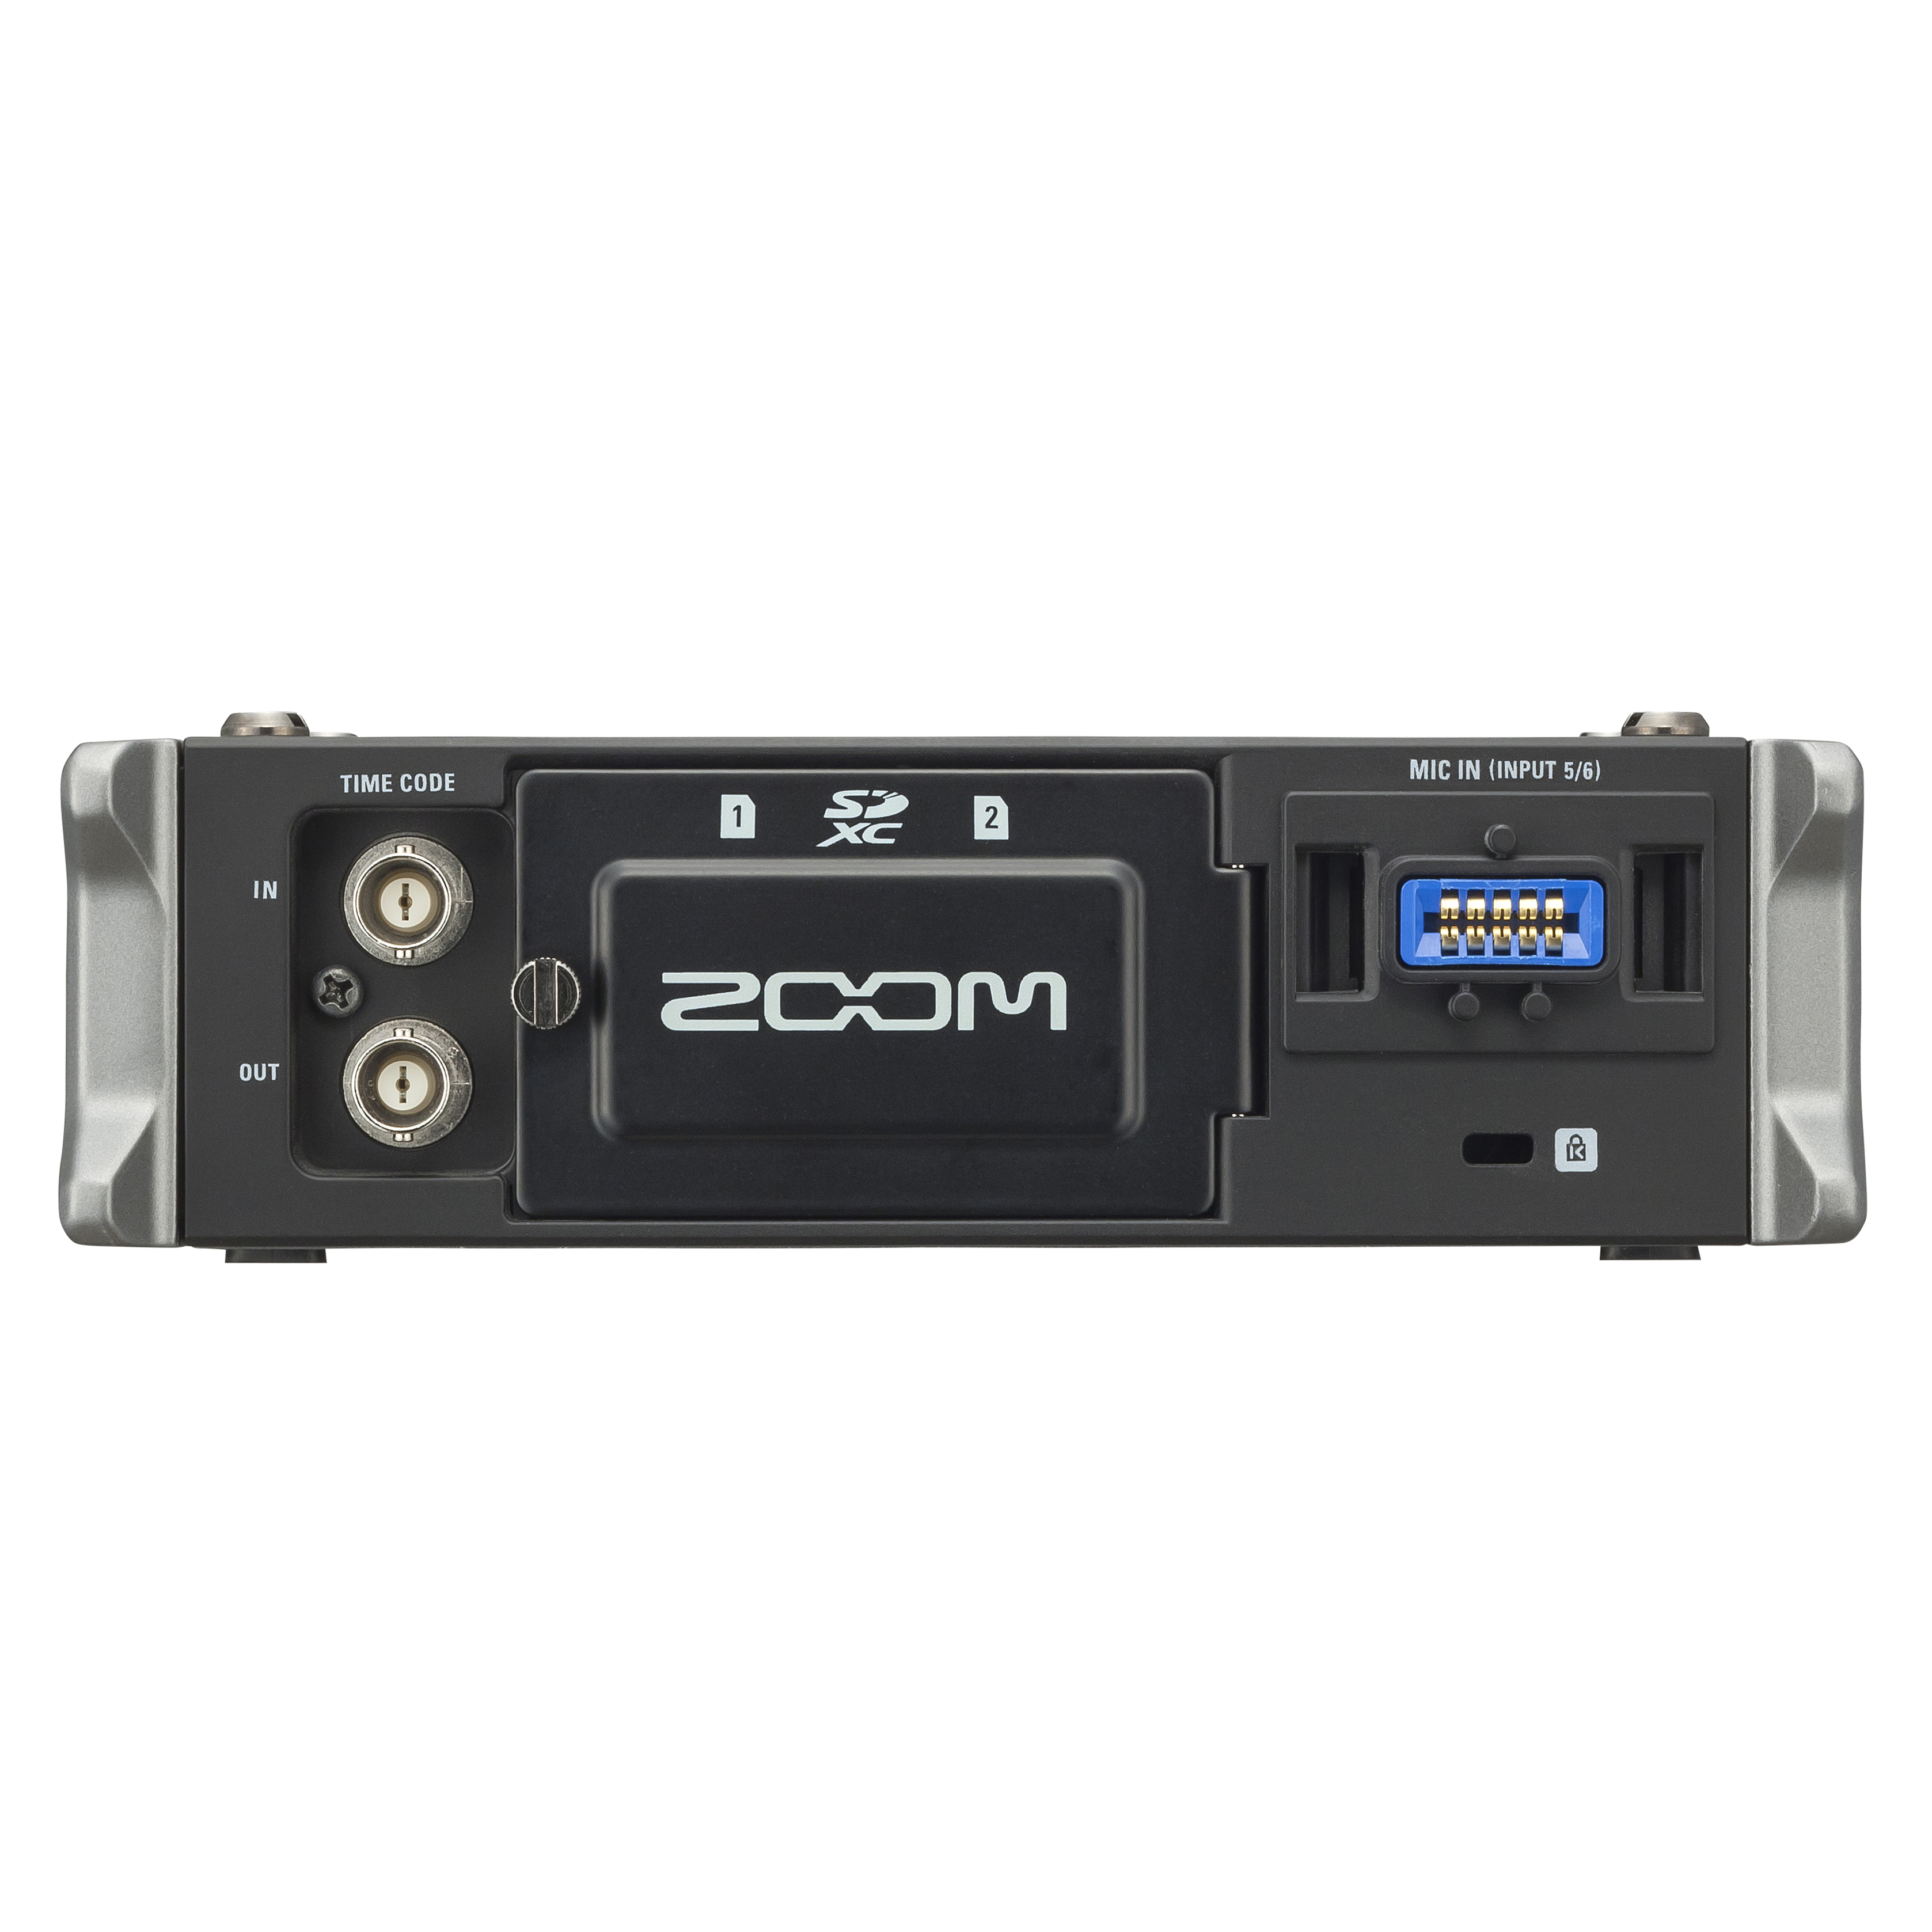 F4 Multitrack Field Recorder Zoom 5mm Audio Cable Wiring Diagram Also Expression Pedal Images